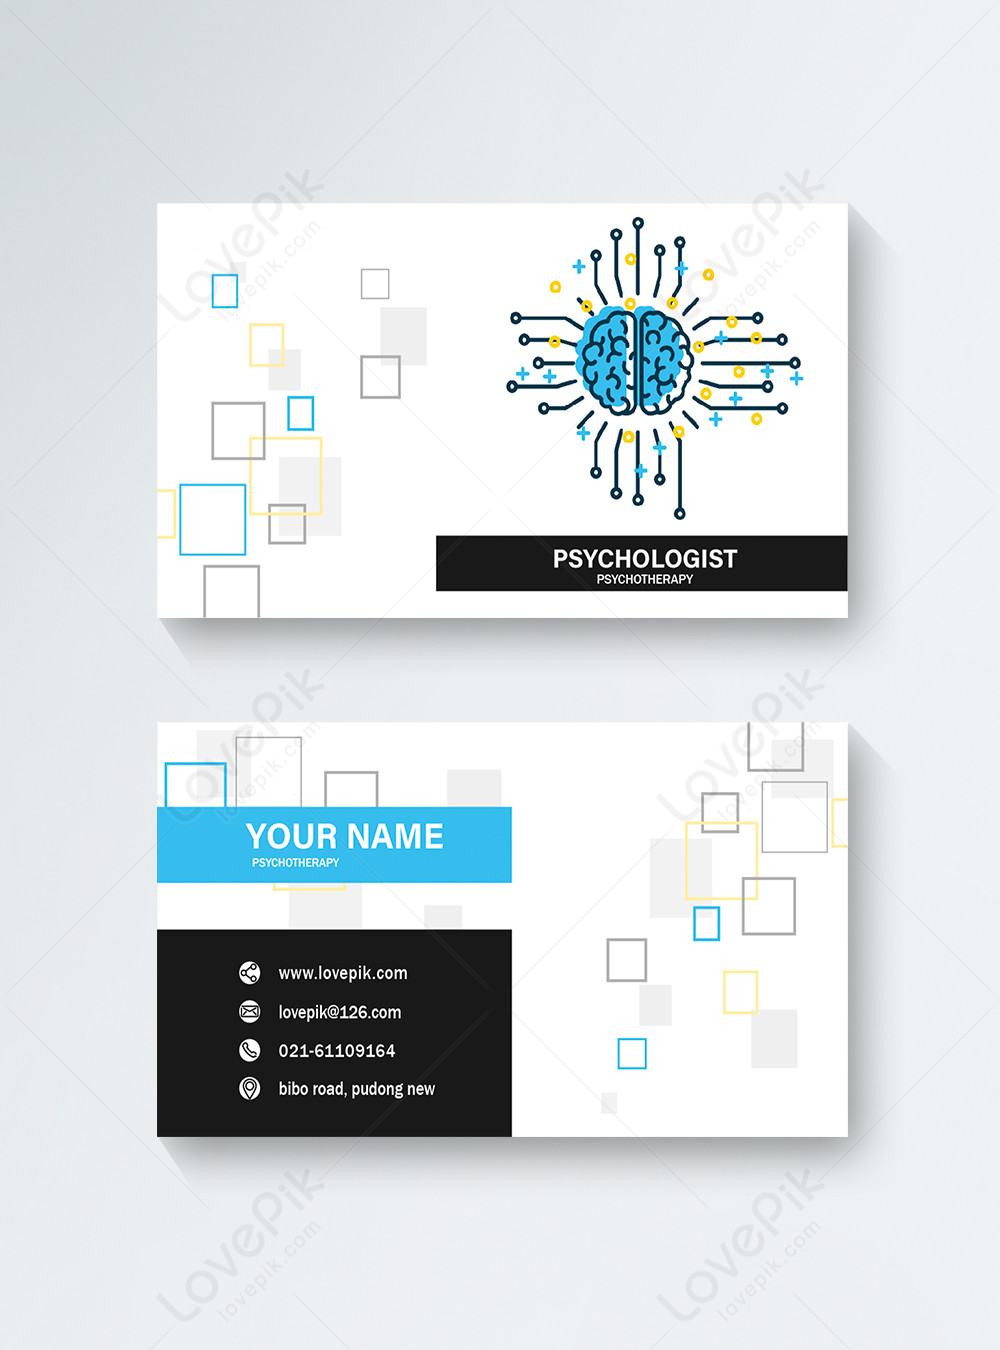 Psychologist Business Card Template Image Picture Free Download 450000380 Lovepik Com